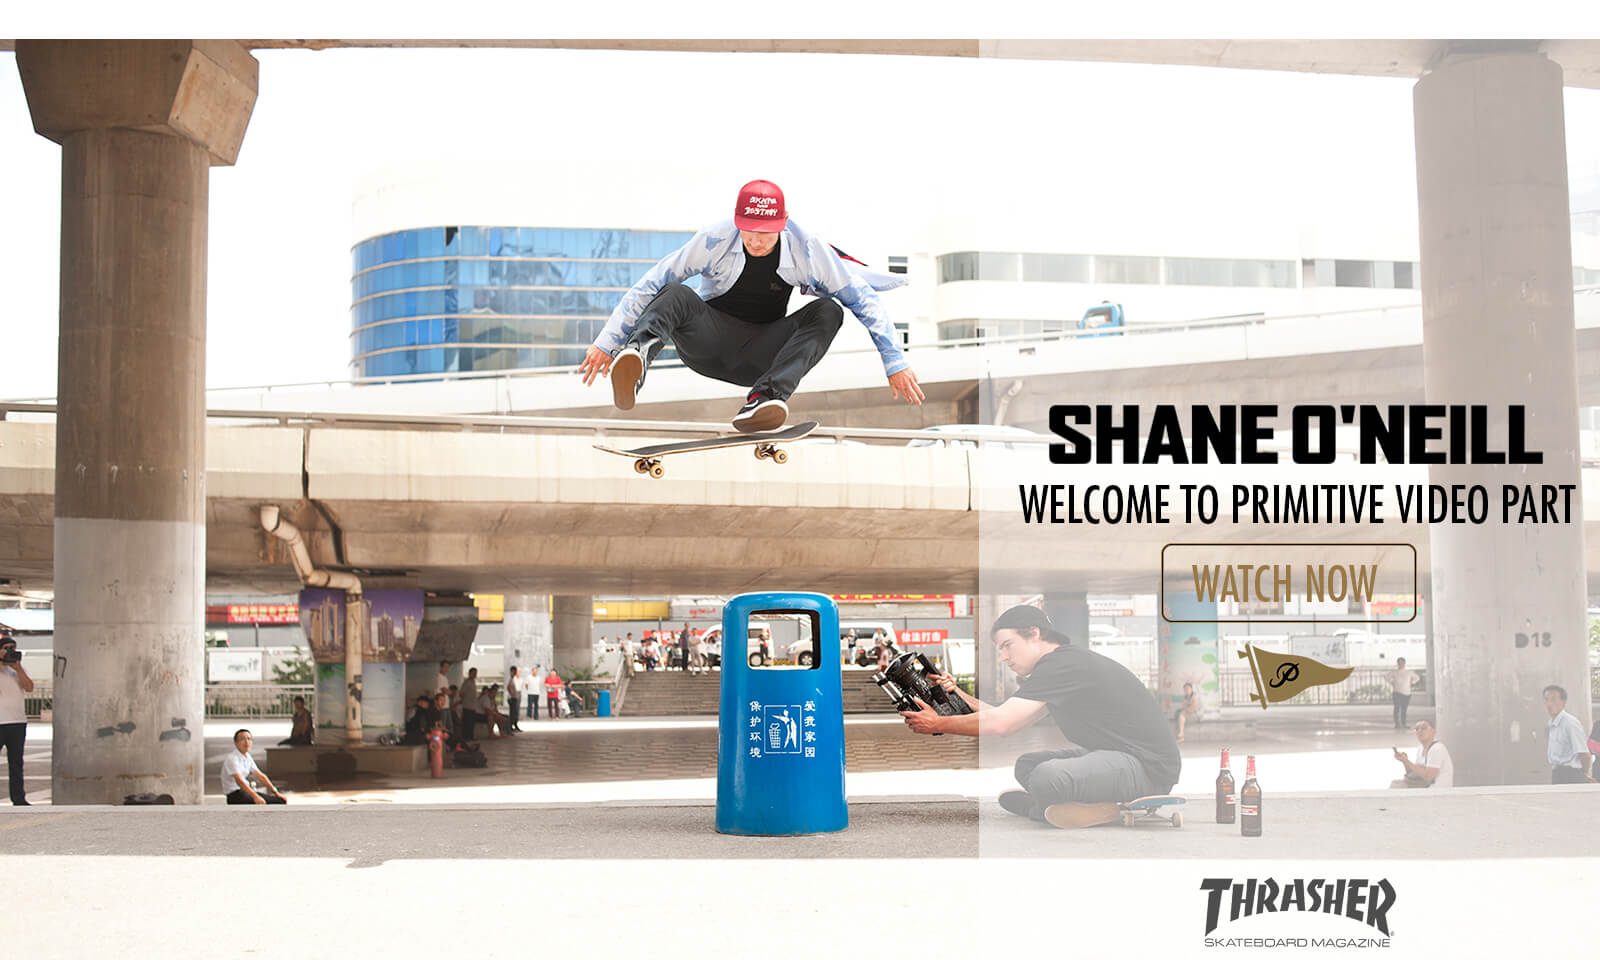 SHANE O'NEILL WELCOME TO PRIMITIVE PART